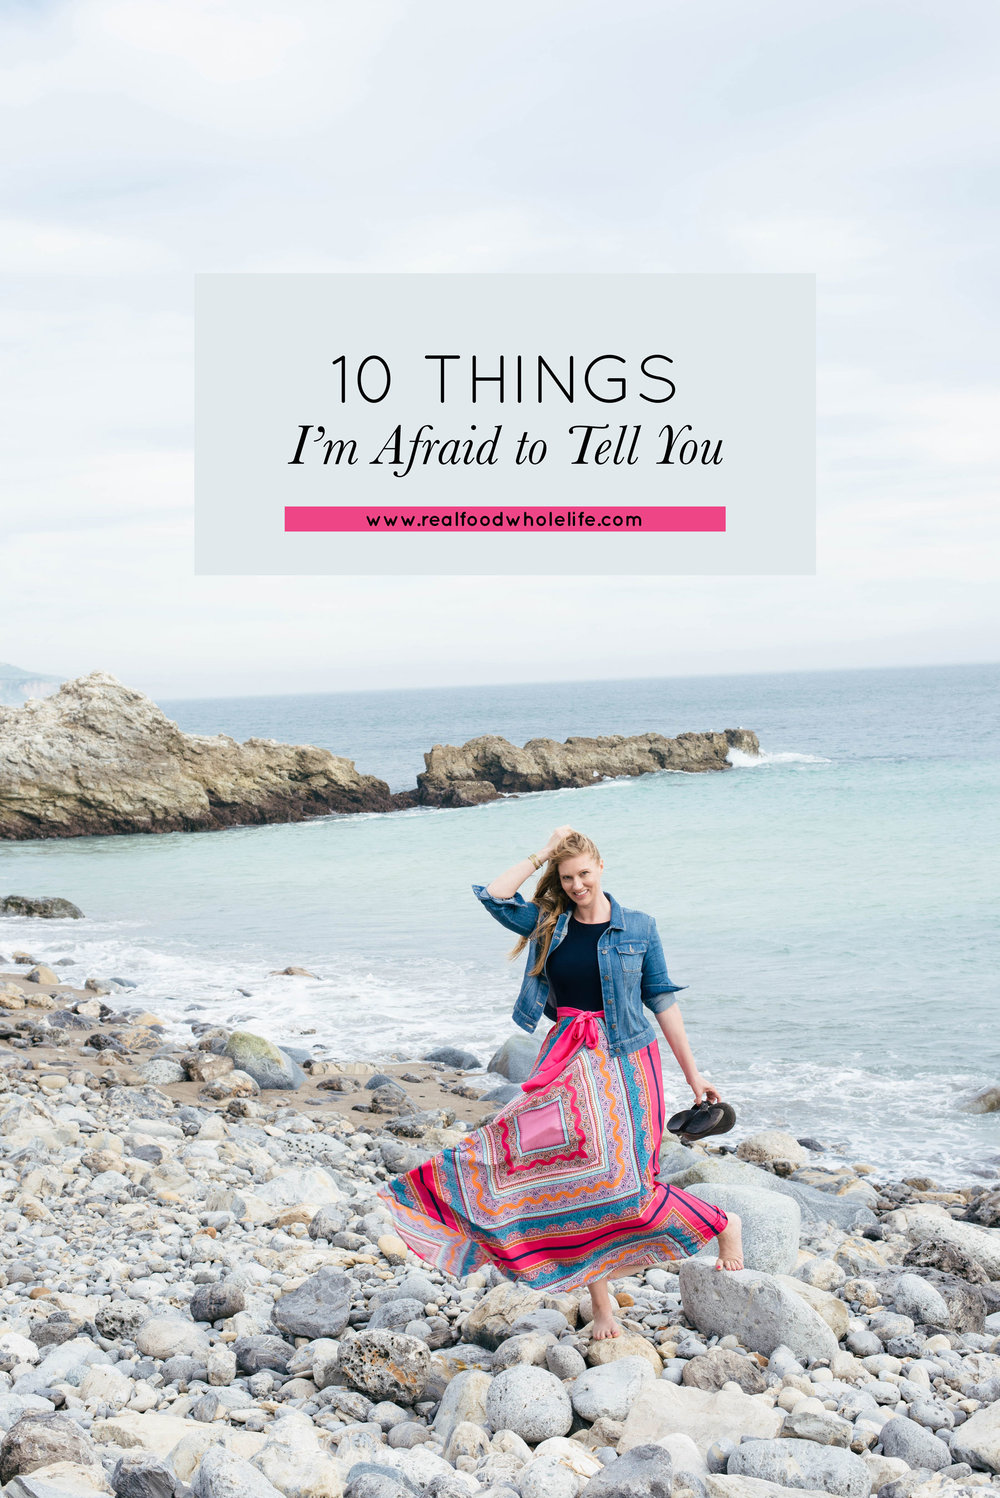 10 Things I'm Afraid to Tell You. www.realfoodwholelife.com